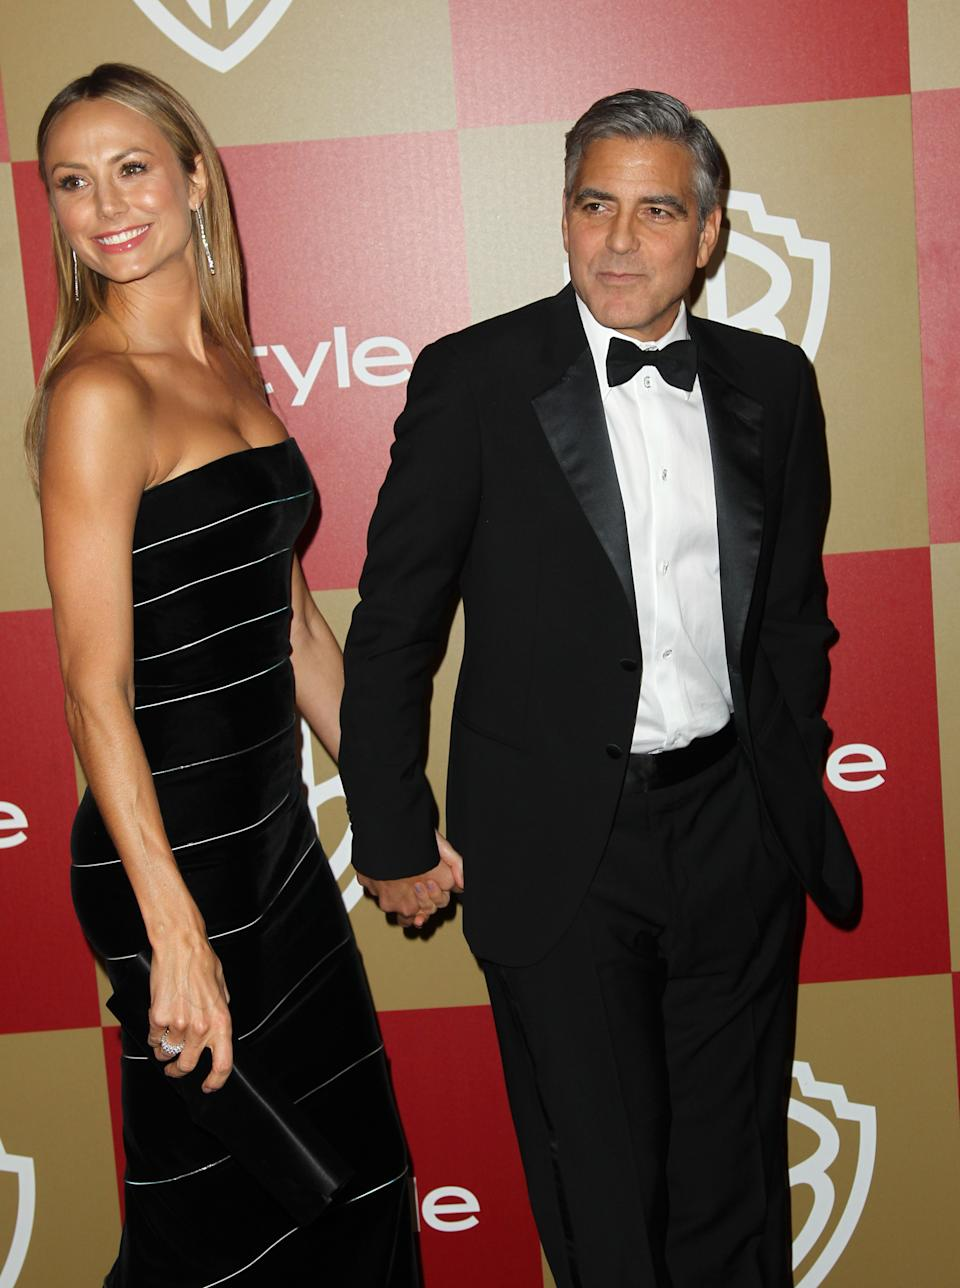 Stacy Keibler, left, and George Clooney arrive at the InStyle and Warner Bros. Golden Globe After Party at the Beverly Hilton Hotel on Sunday Jan. 13, 2013, in Beverly Hills, Calif. (Photo by Matt Sayles/Invision/AP)